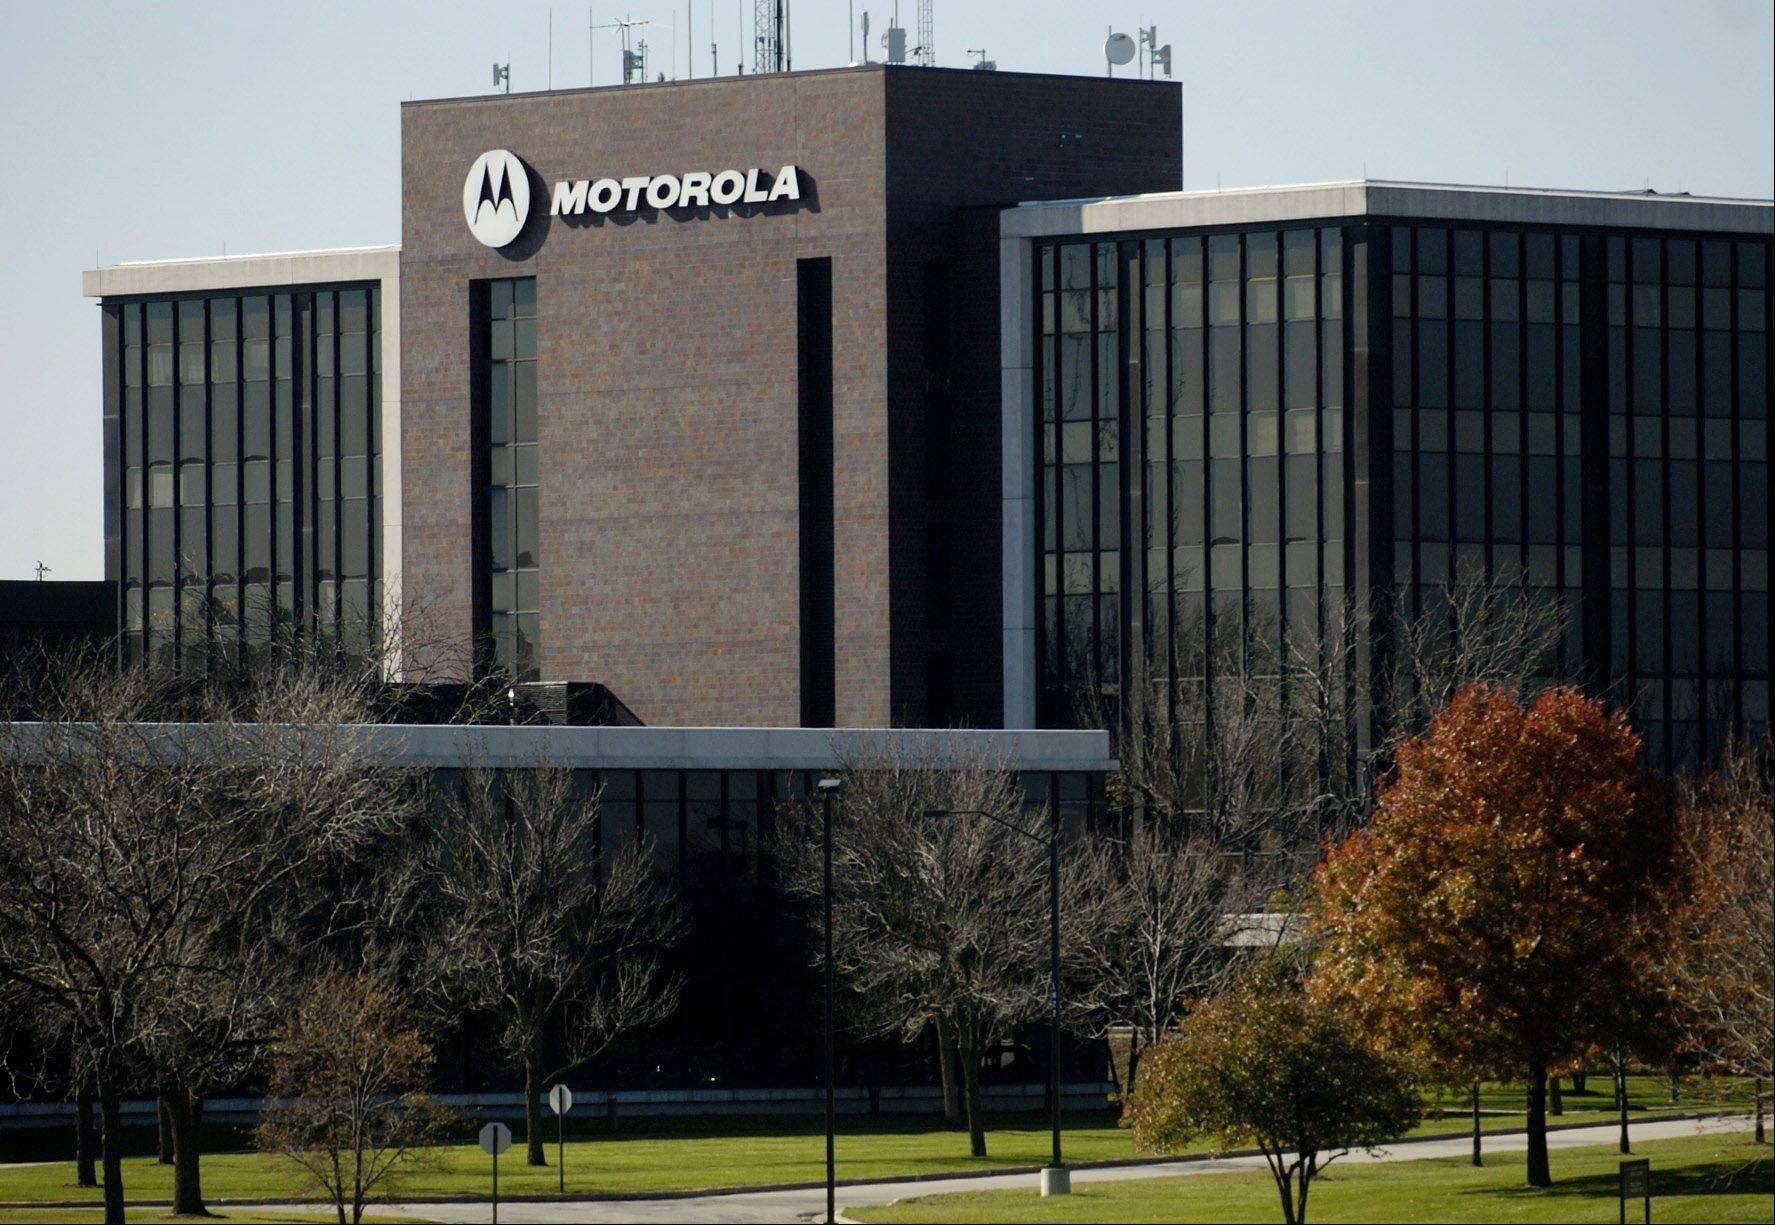 Motorola Solutions Inc., the maker of bar-code scanners and walkie-talkies, will buy back as much as $2 billion worth of its shares and begin paying a dividend after selling its networks unit and cutting debt.